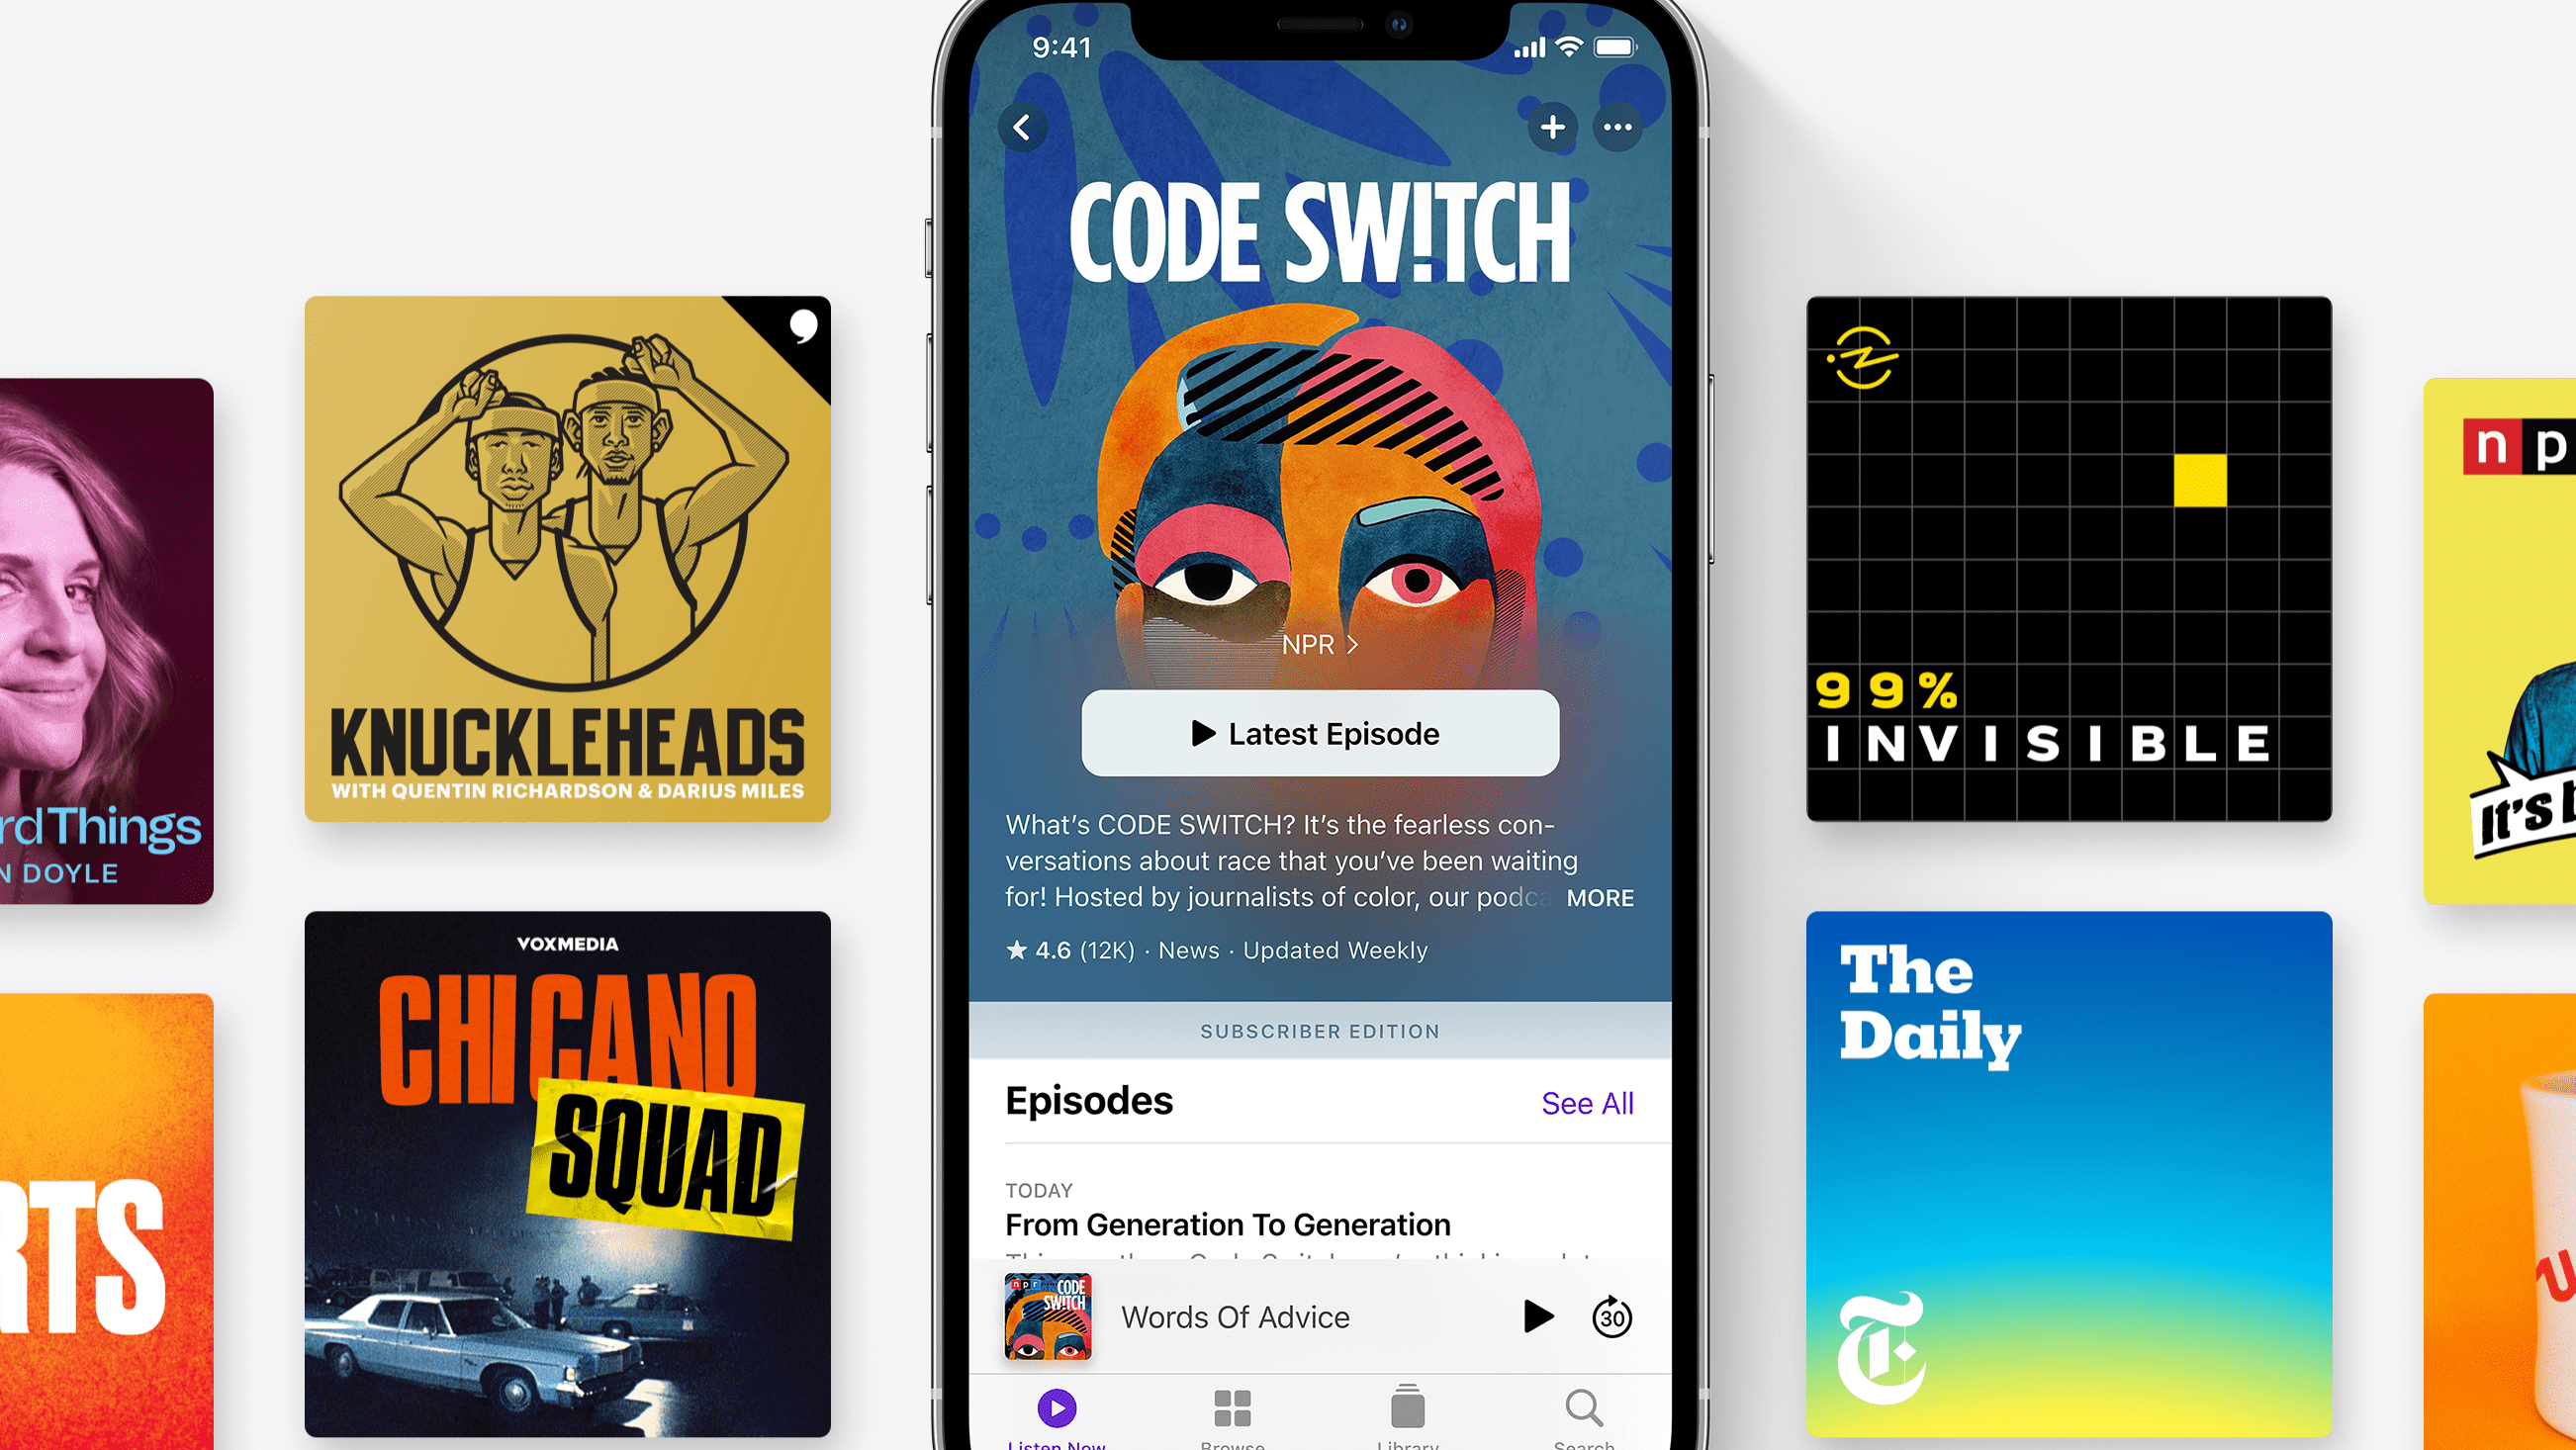 Code Sw!tch and cover are for a variety of other podcasts on Apple Podcasts